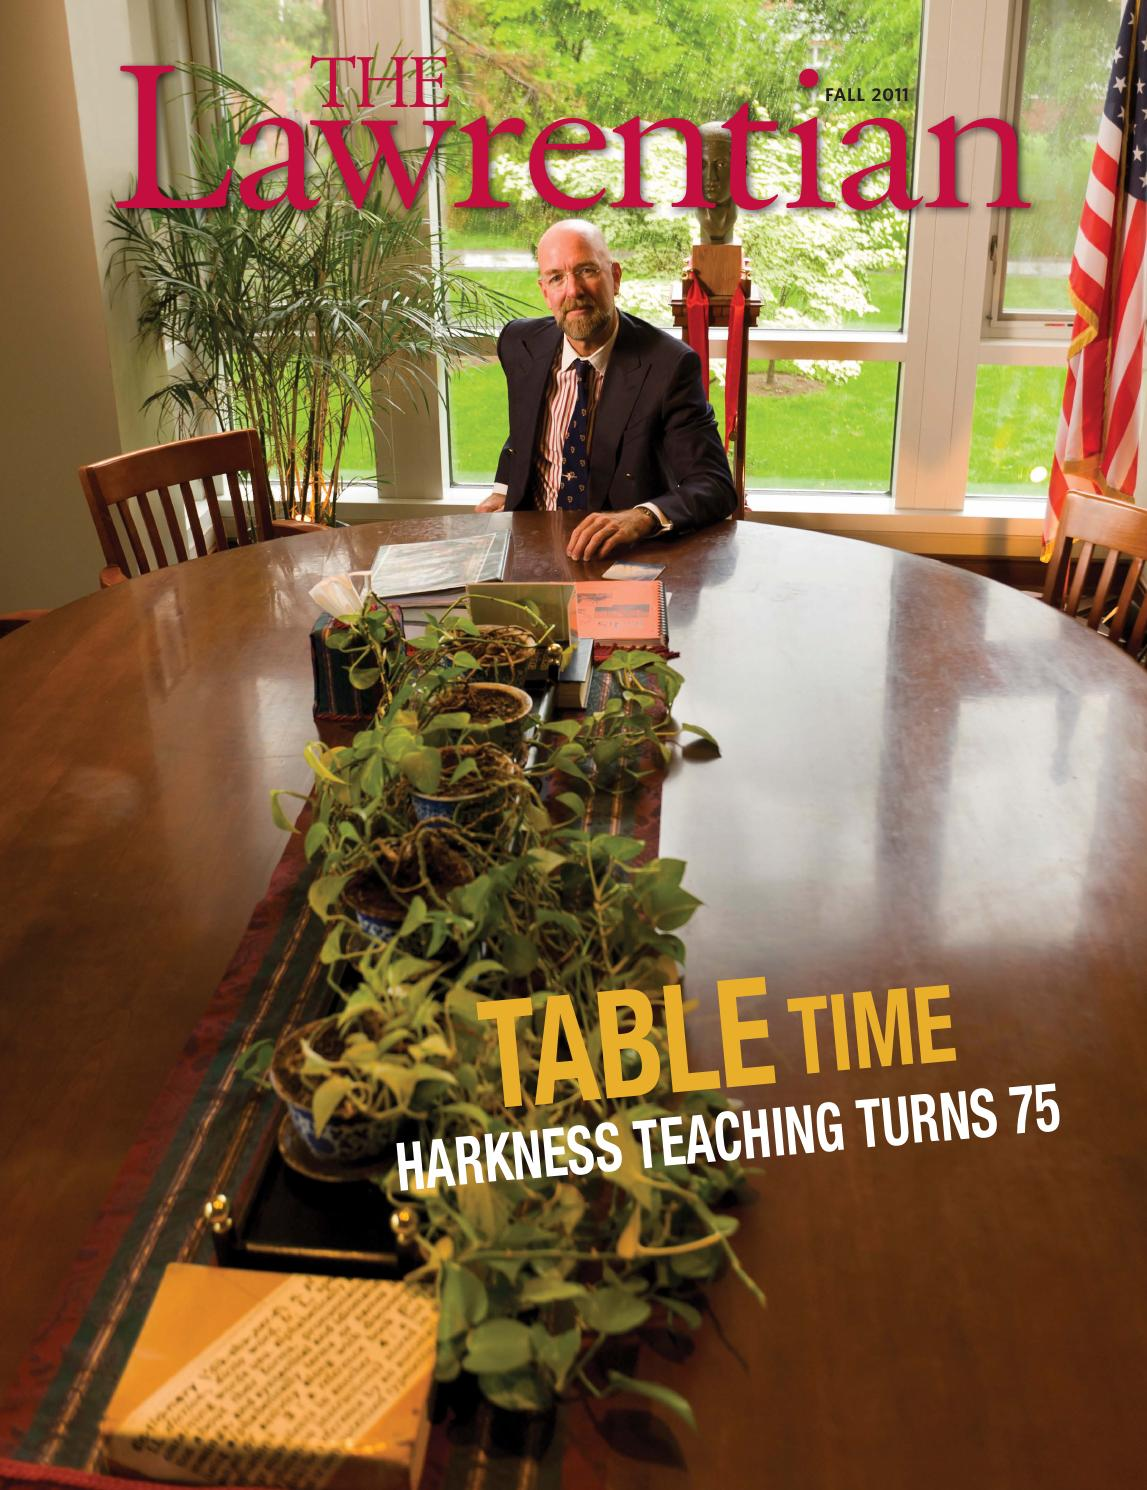 The Lawrentian - Fall 2011 by The Lawrenceville School - issuu